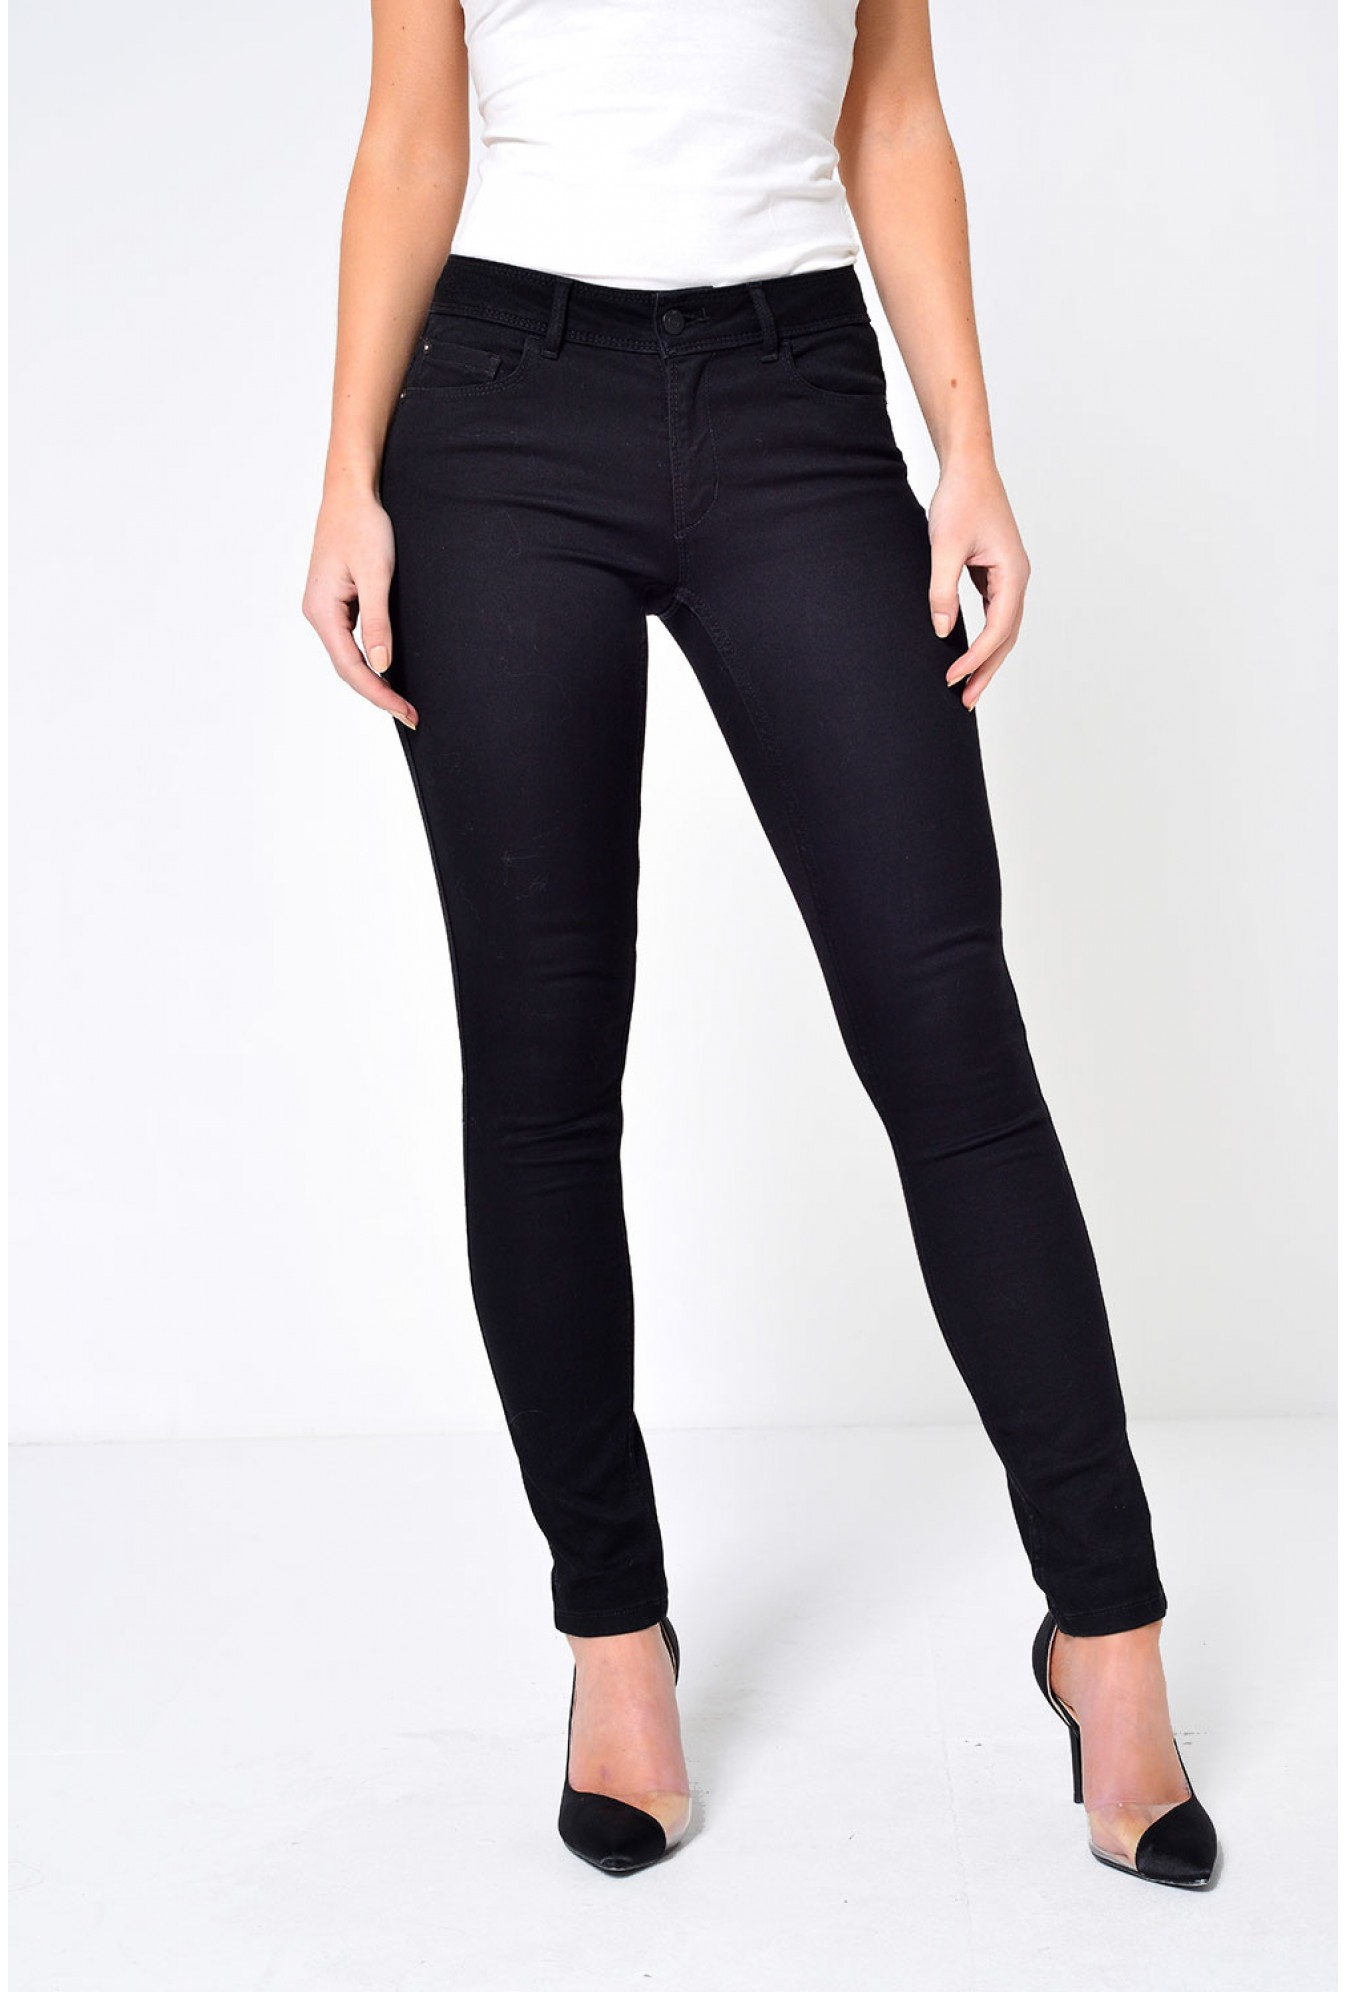 79abcabeac19 More Views. Ultimate Short Super Stretch Skinny Jeans in Black. Only